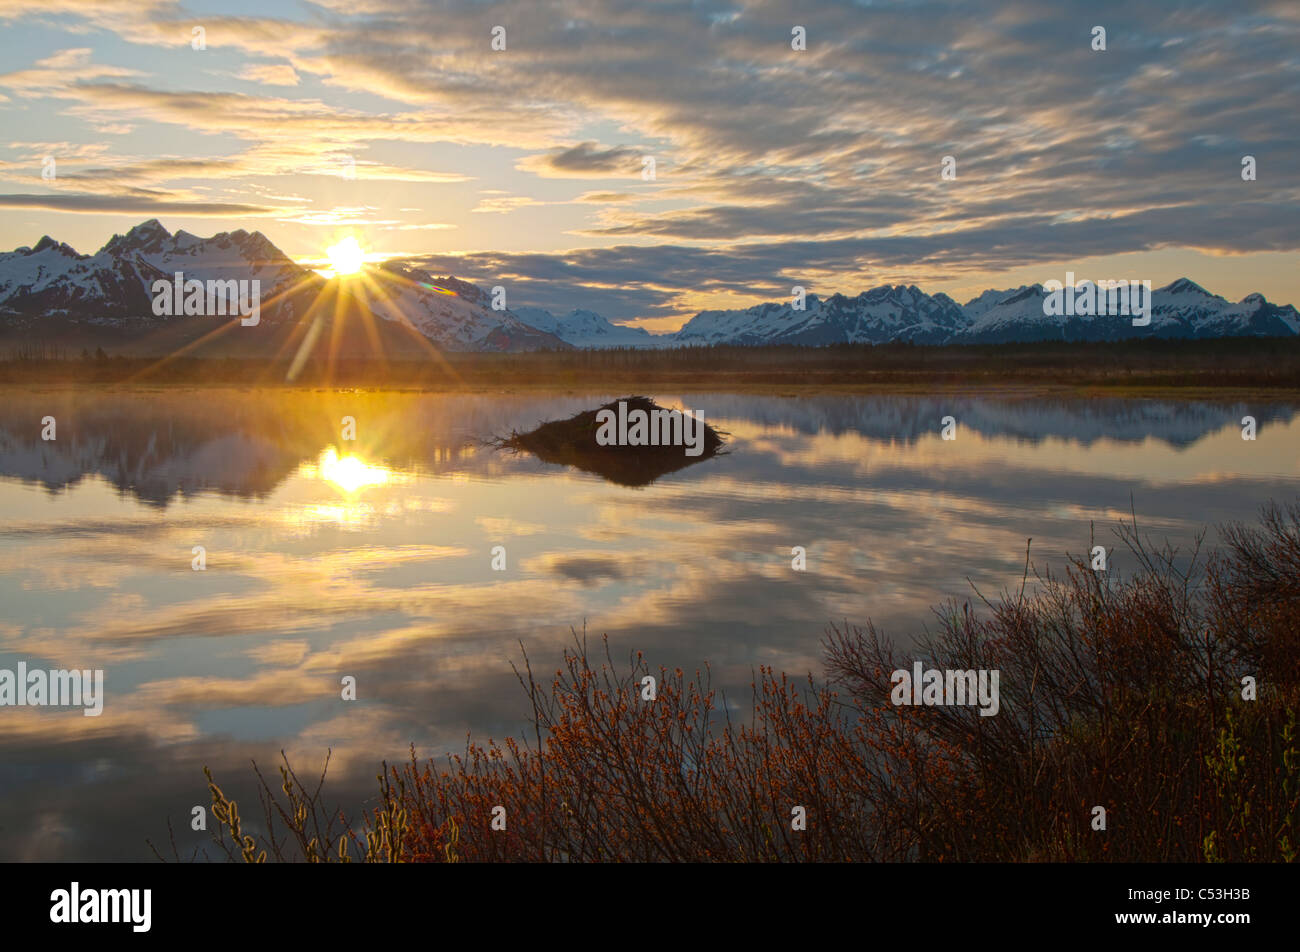 Sun rises over the Chugach Mountains with a pond and beaver lodge in the foreground, Chugach National Forest, Alaska - Stock Image